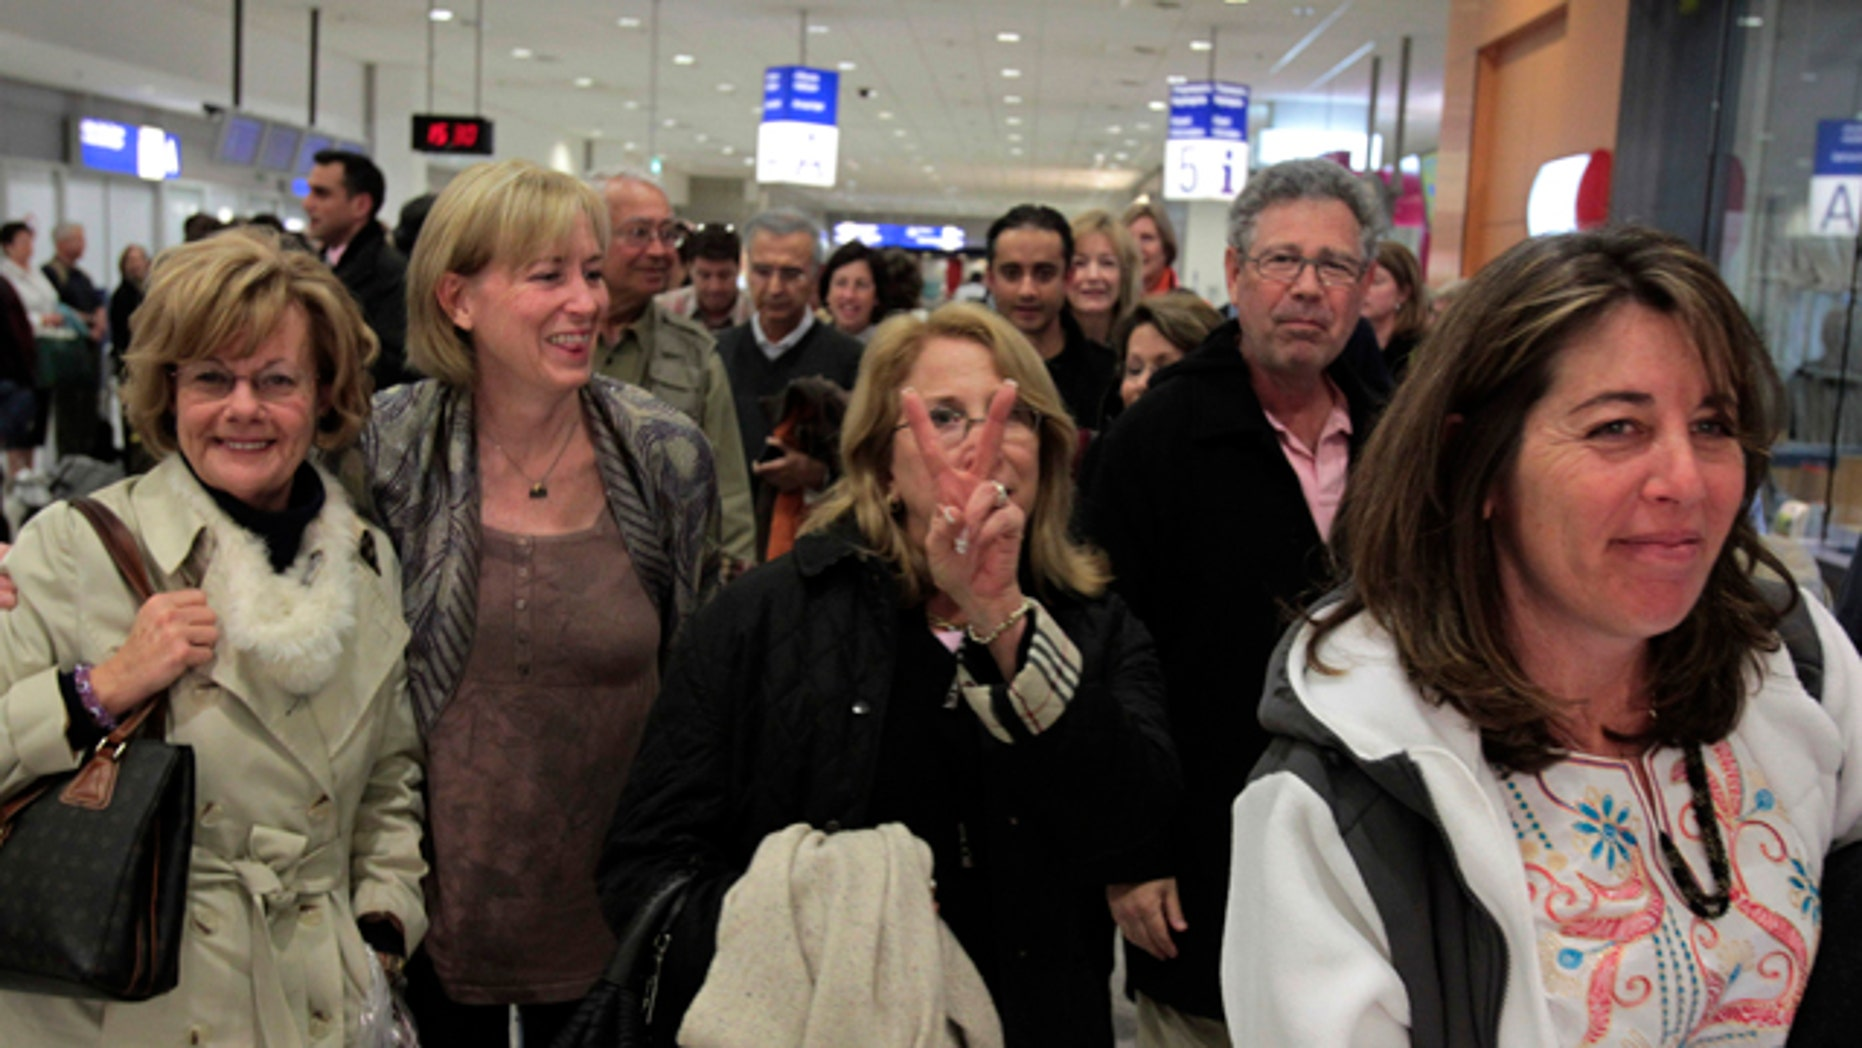 Jan. 31: Tourists from the U.S. arrive at Athens International Airport Eleftherios Venizelos in Spata, near Athens. A tourist group with 65 Americans arrived in Athens as hundreds of foreigners were being evacuated from the unrest in Egypt, with countries scrambling to send planes to fly their citizens out and Cairo's short-staffed international airport a scene of chaos and confusion. (AP)